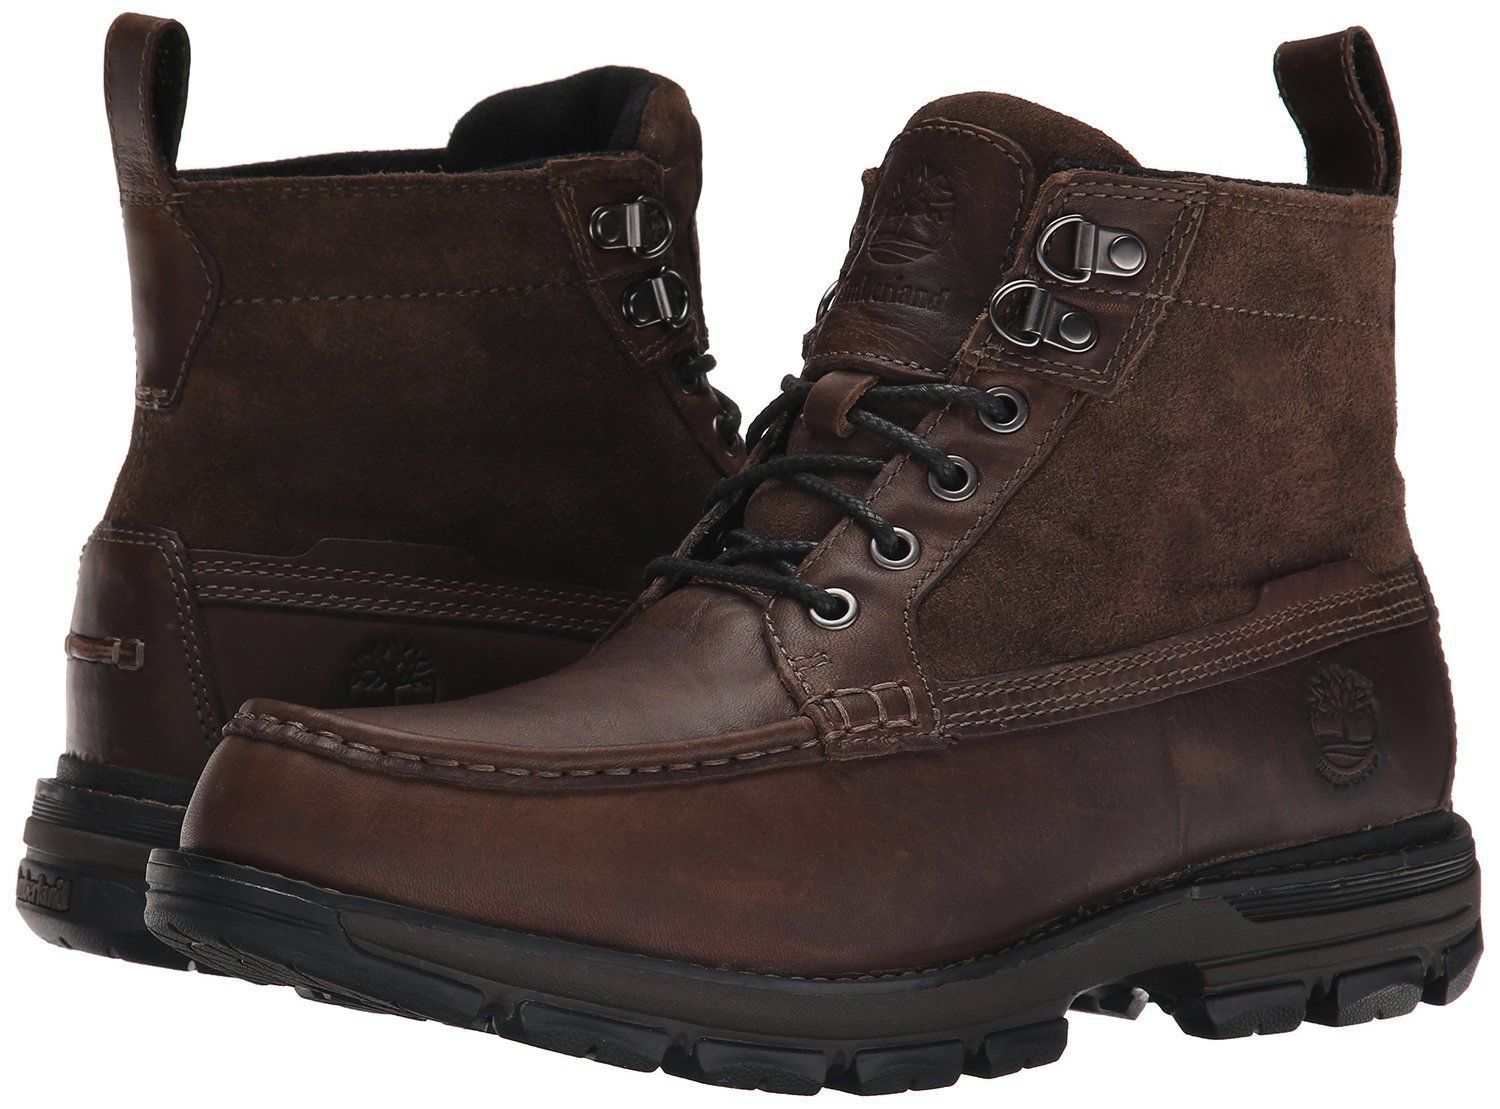 Primary image for Men's Timberland Heston Mid Waterproof Boots, 09756R Dark Brown Size 7.5